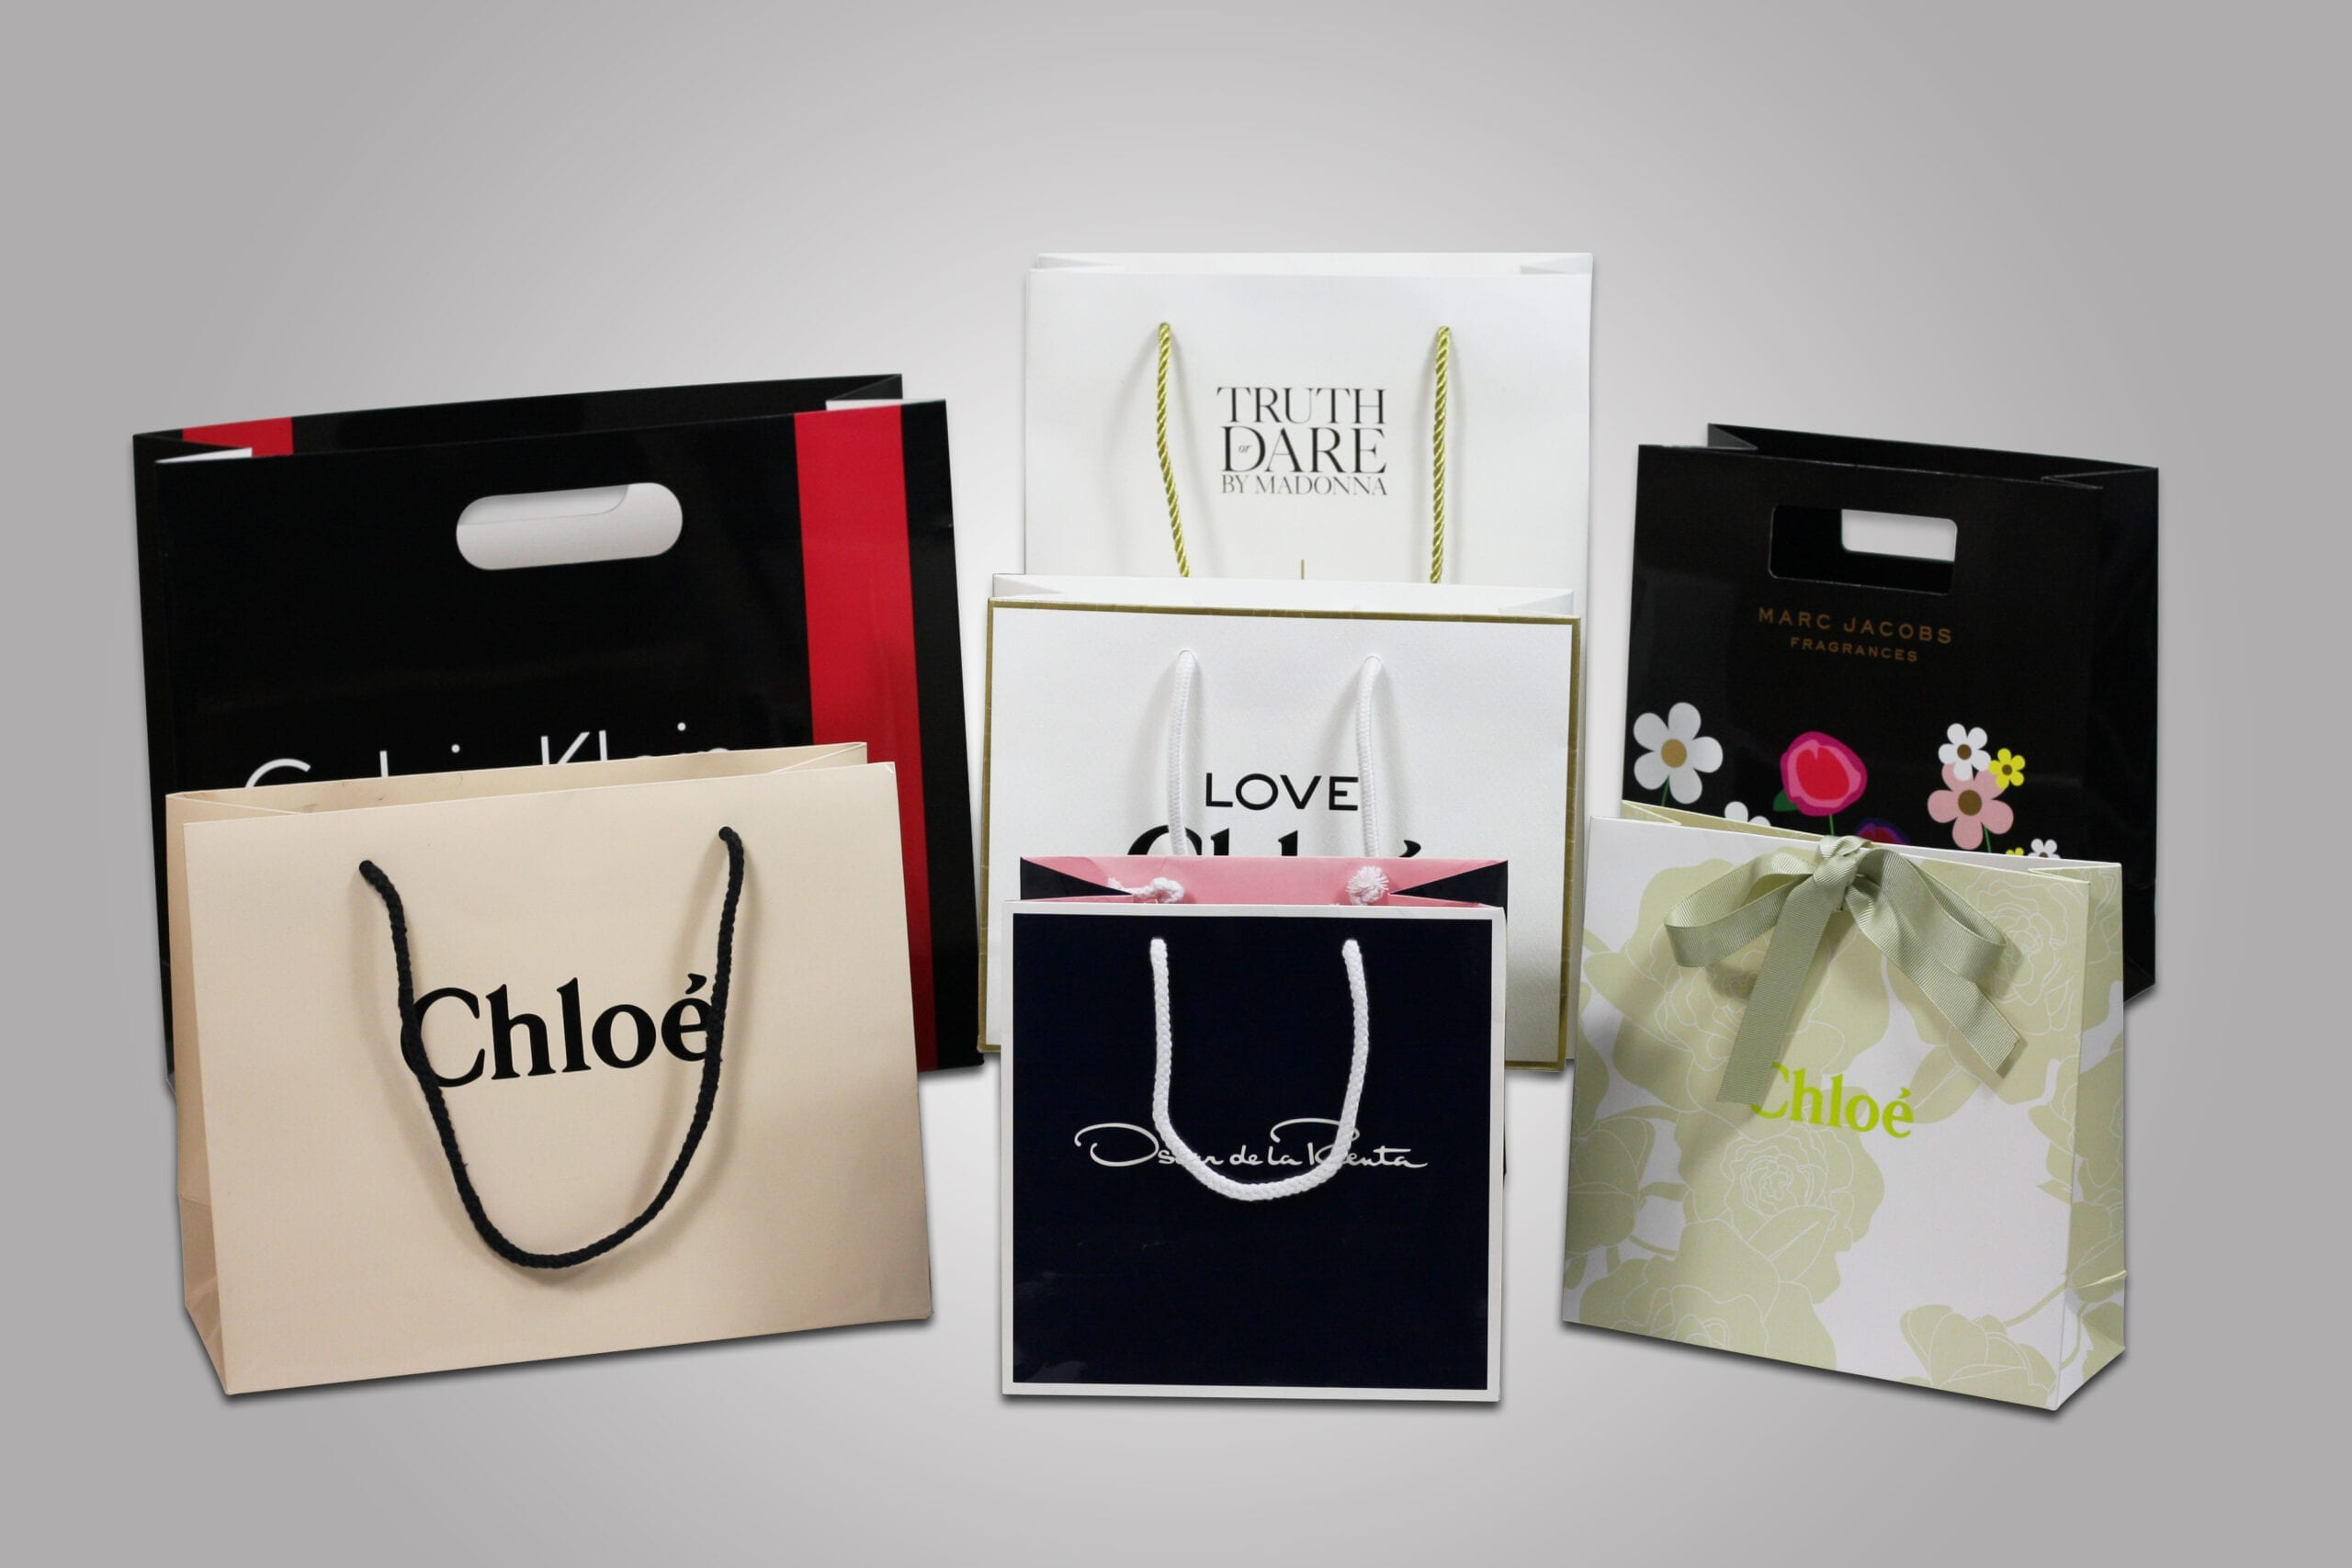 Our custom printing paired with a variety of finishes can turn a humble retail bag into a premium marketing tool. With PPD&G, you can choose almost any shape, size or color, to create the perfect custom retail bag for you and your brand.